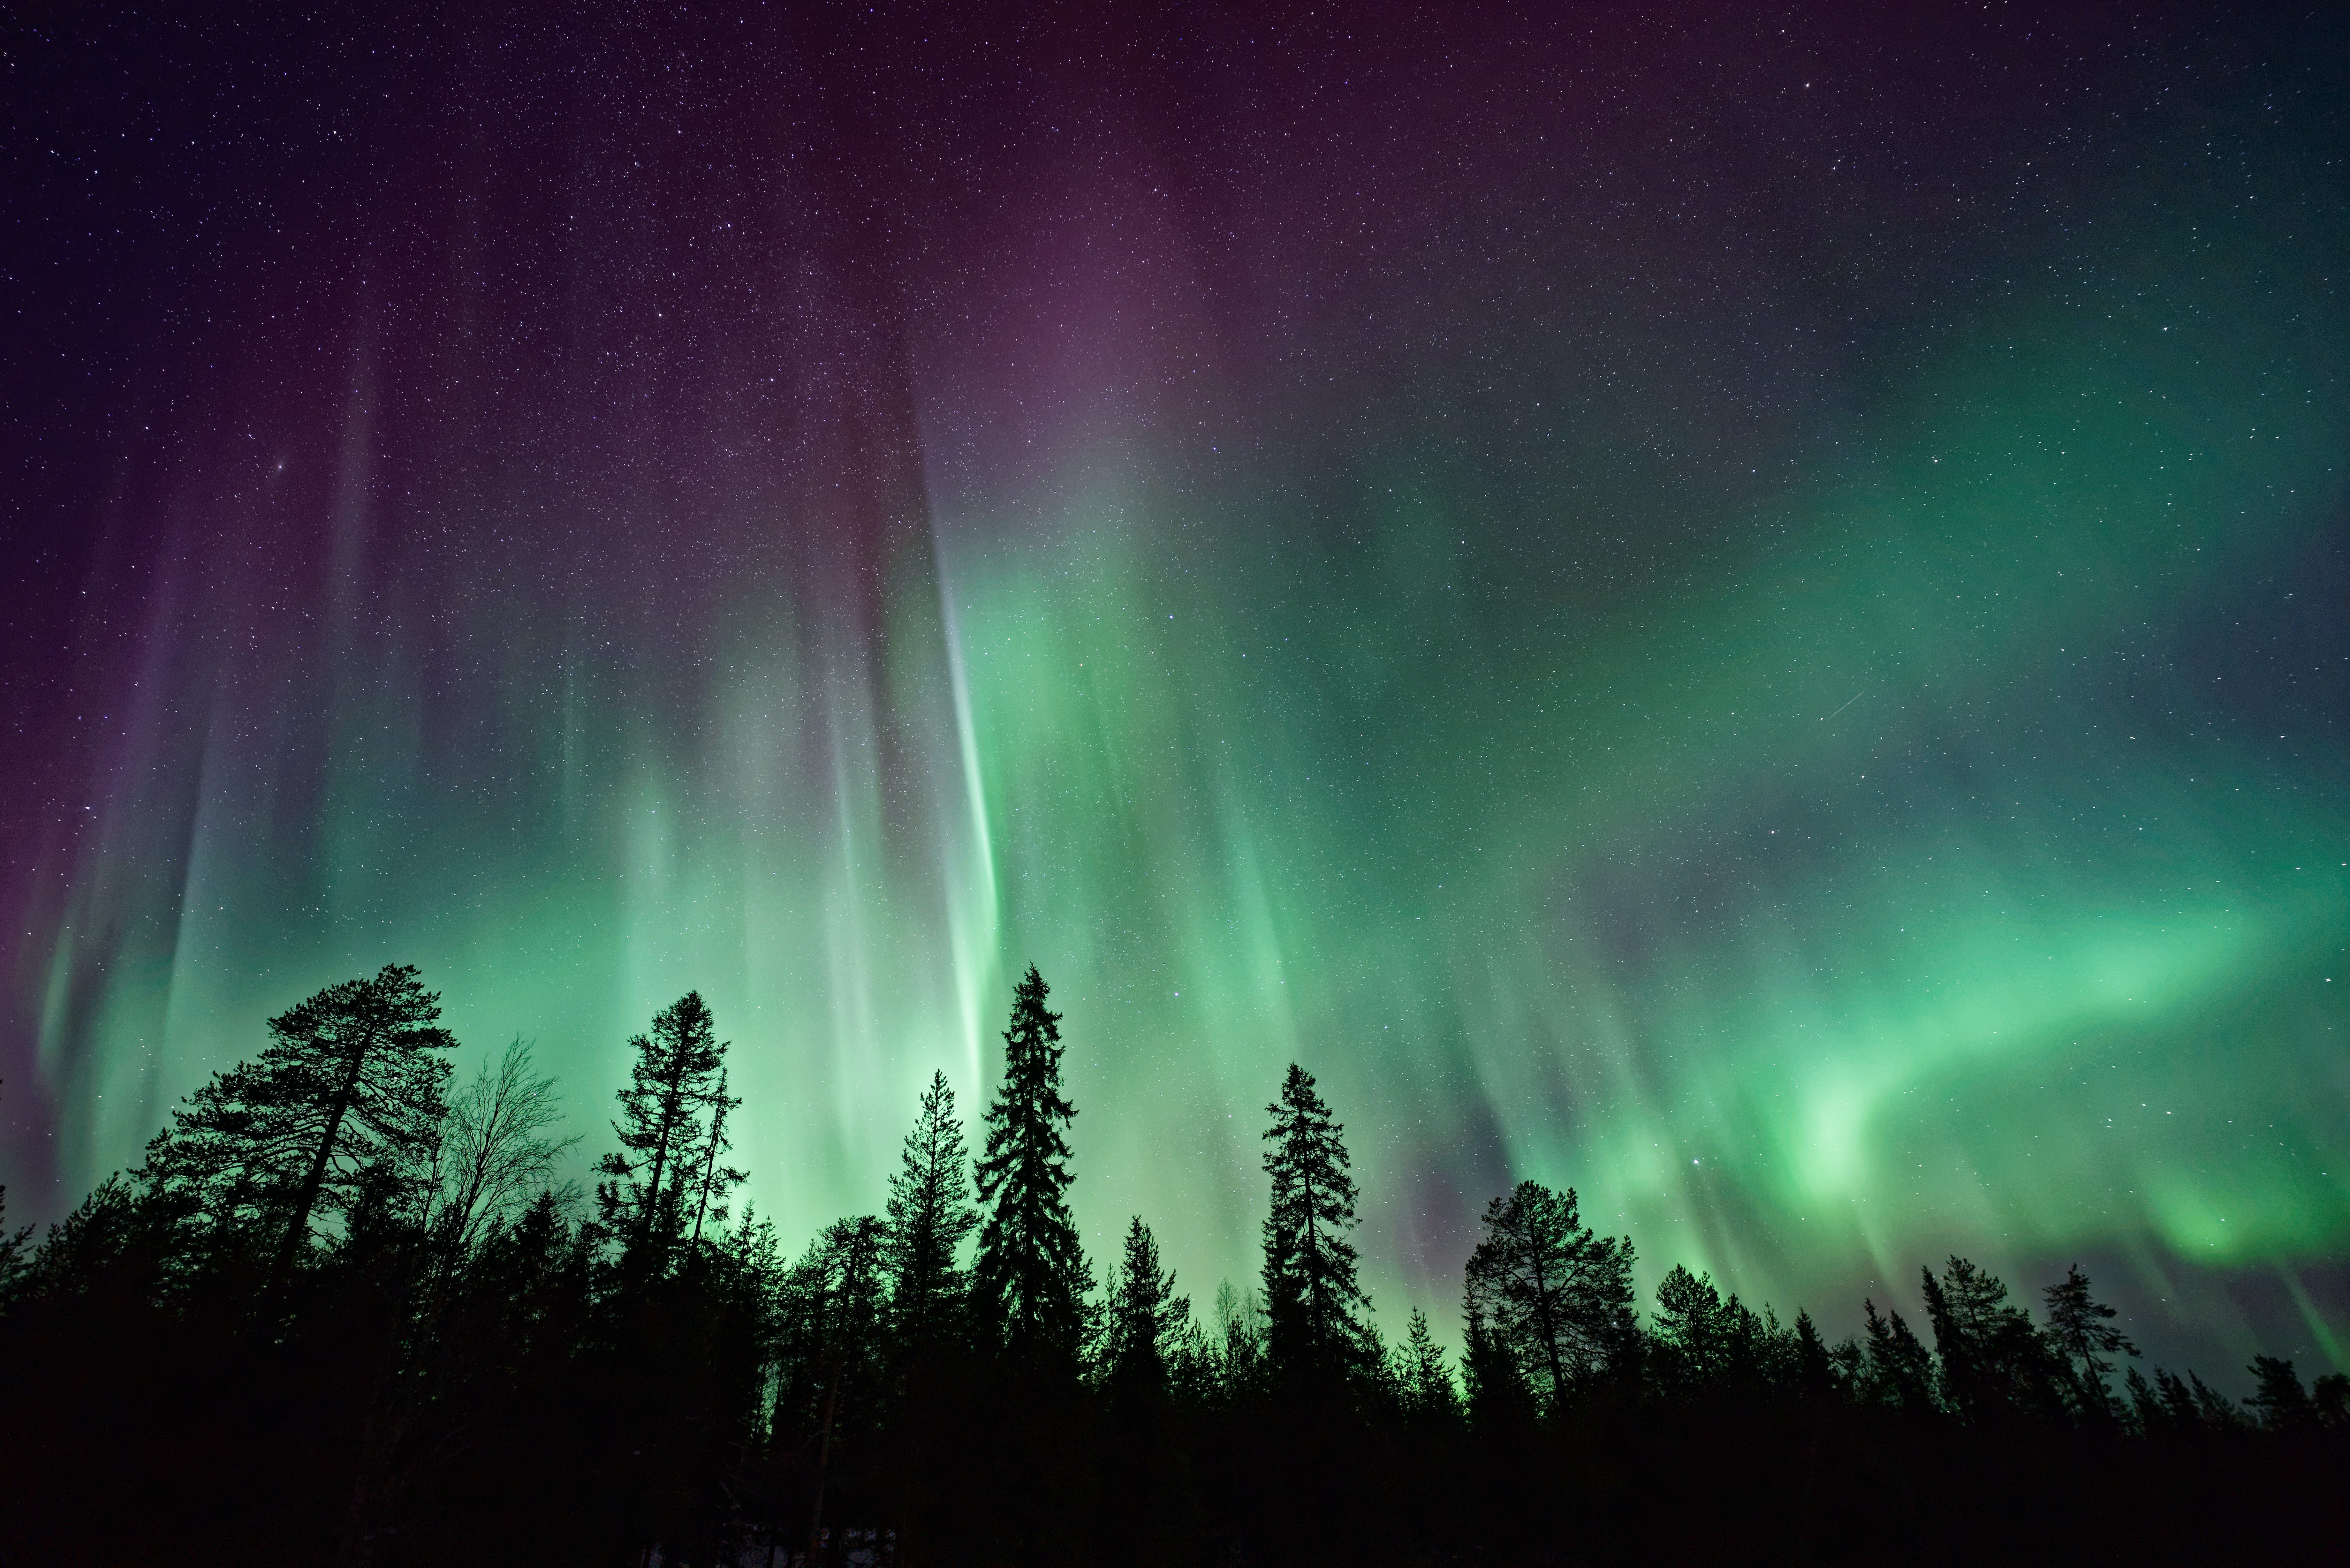 Aurora borealis on a night sky over silhouettes of trees